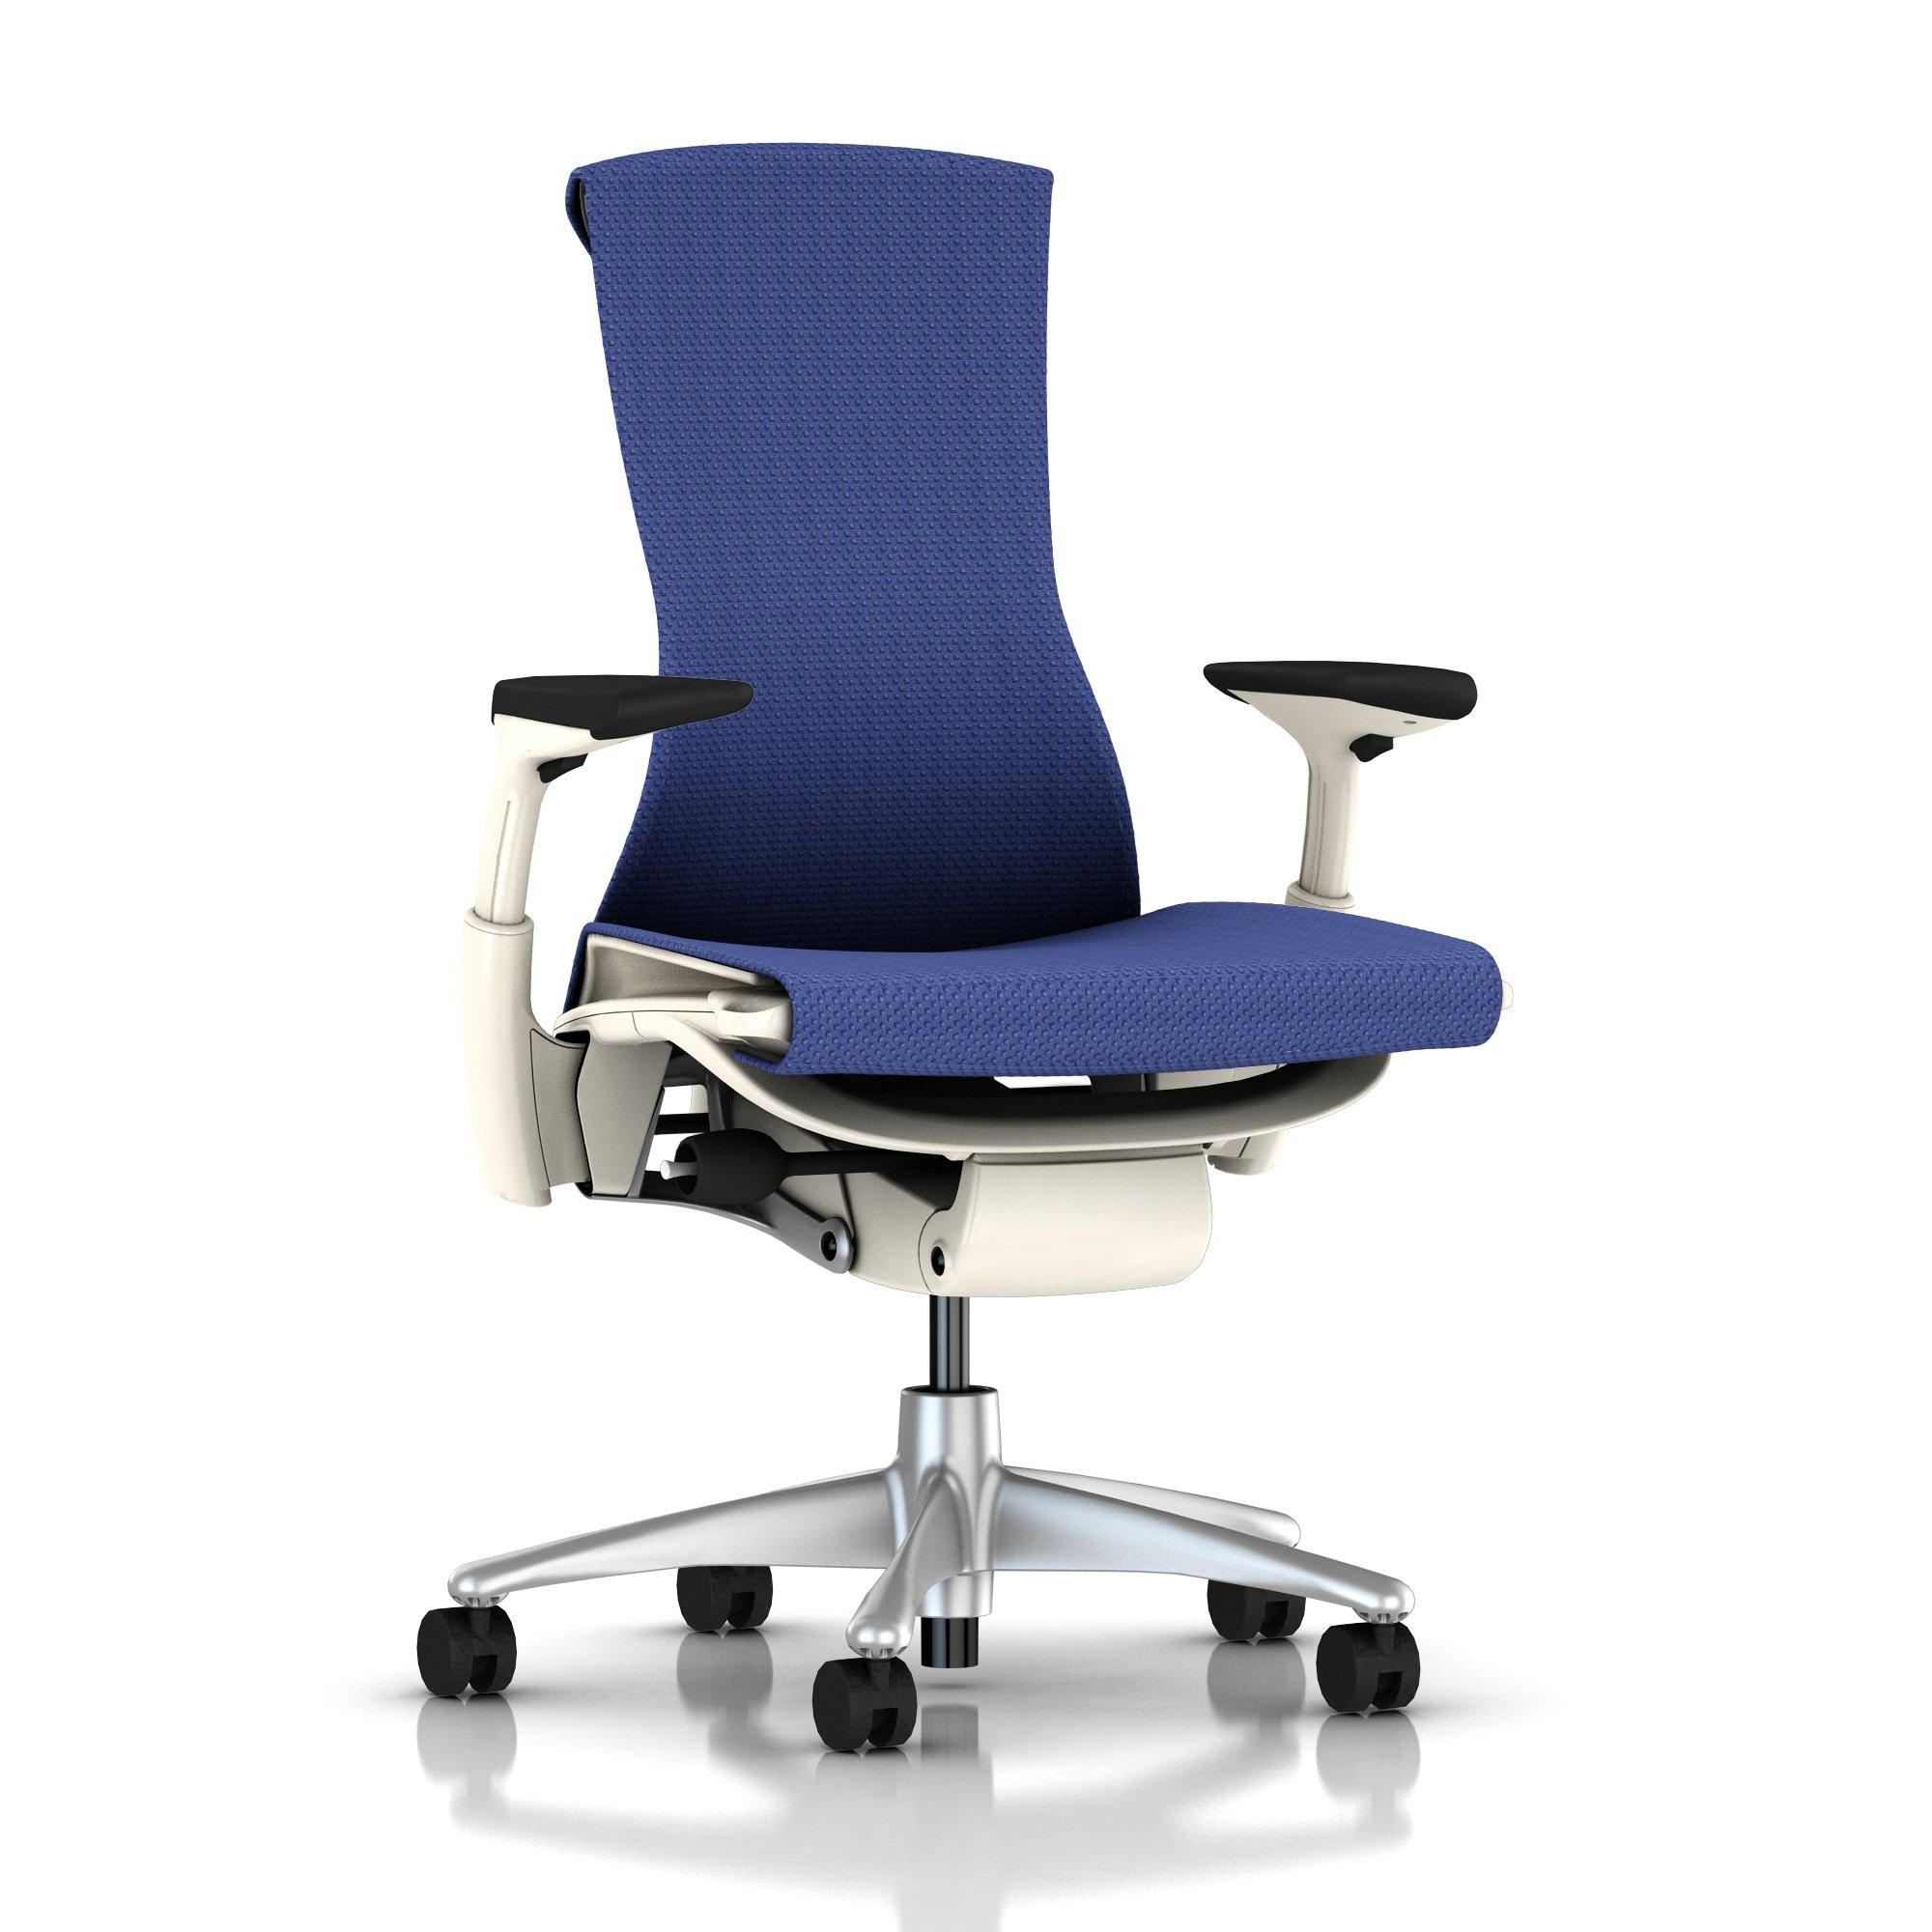 Embody Chair (Iris Blue Balance)